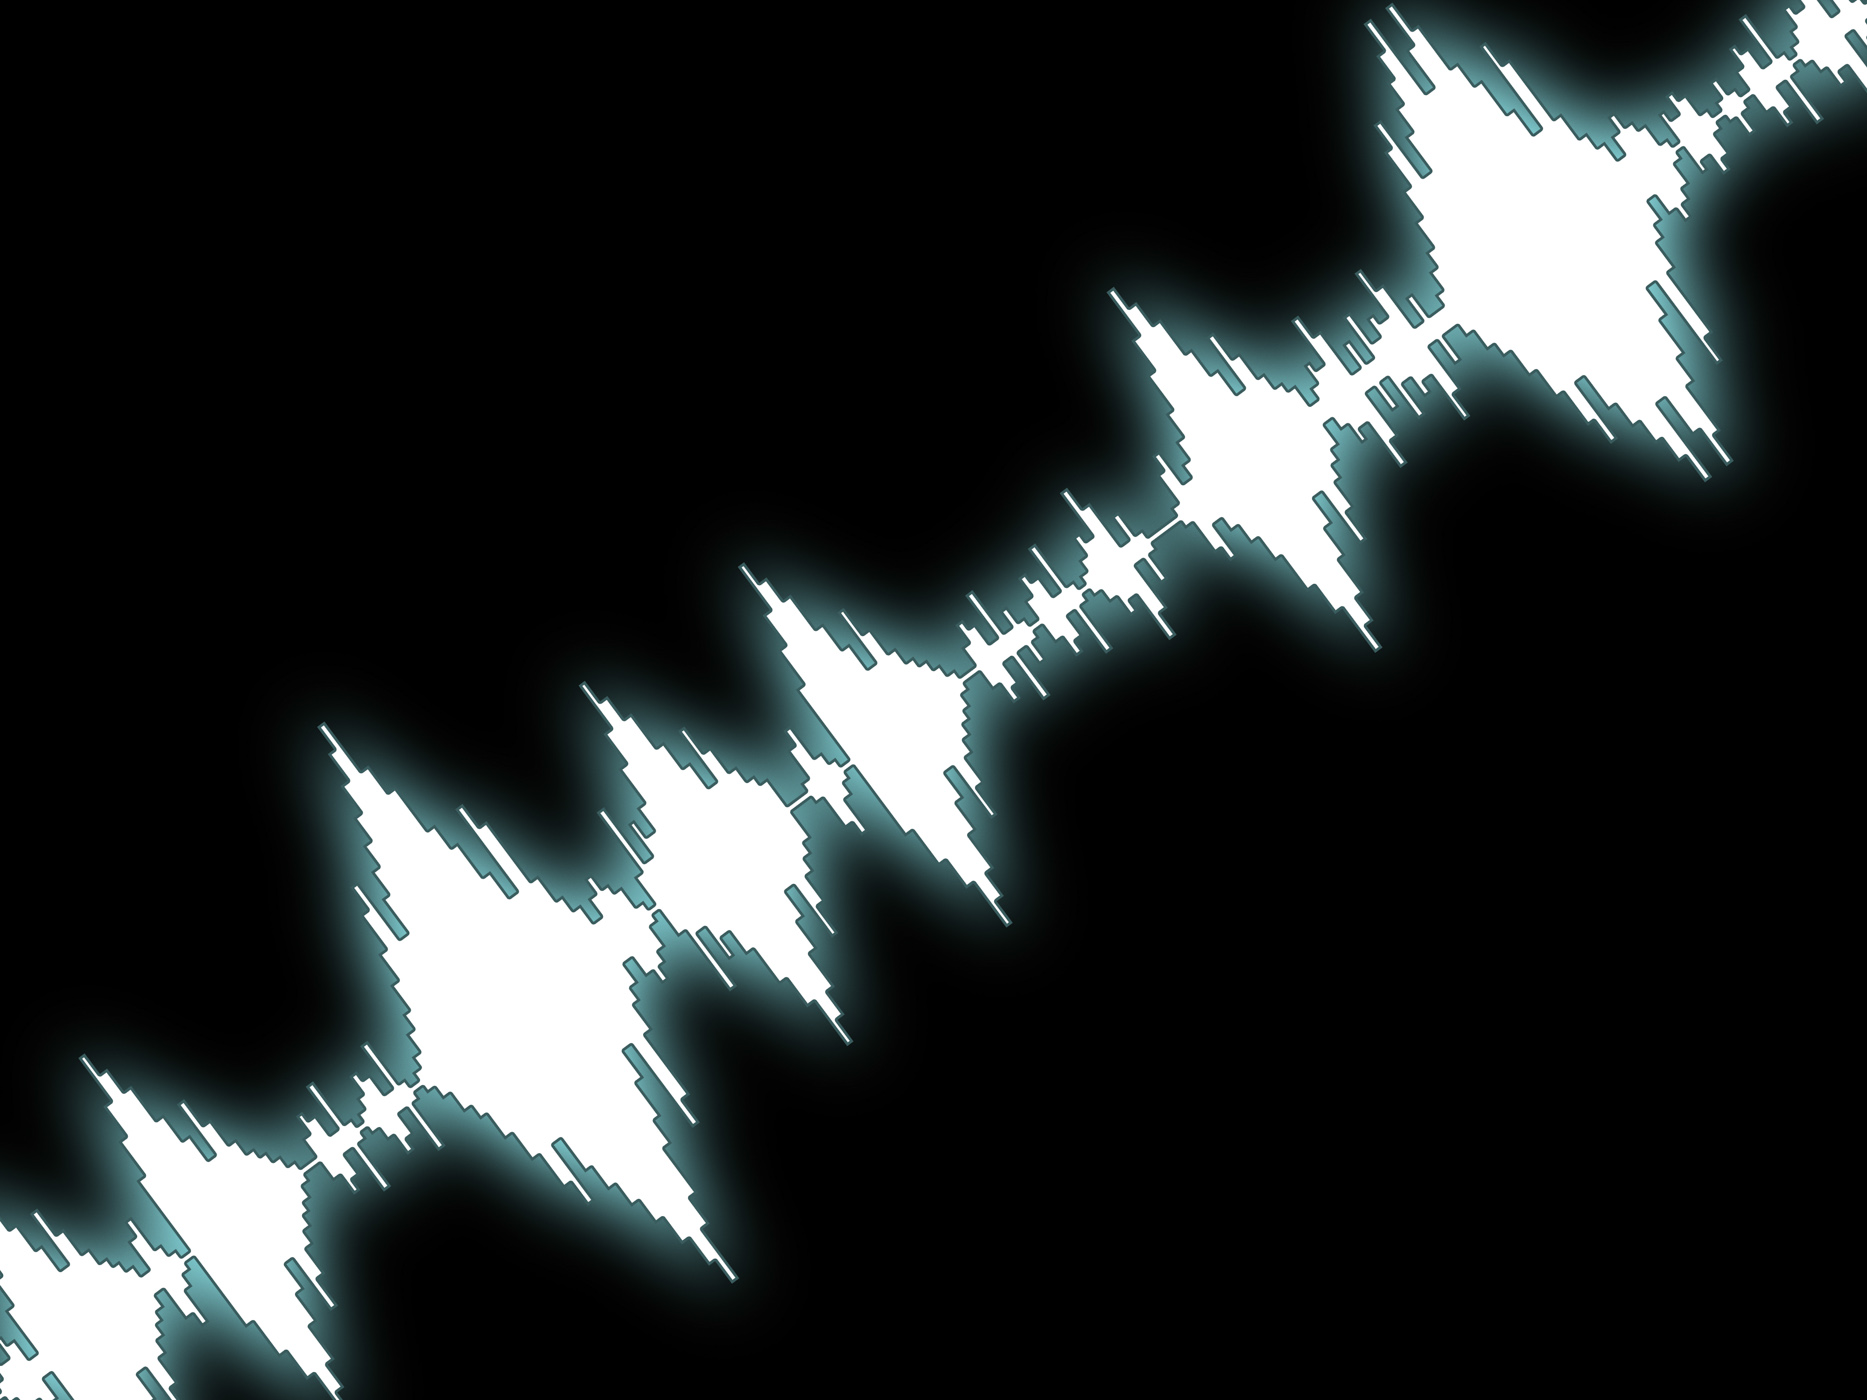 Sound wave background shows equalizer or amplifier photo